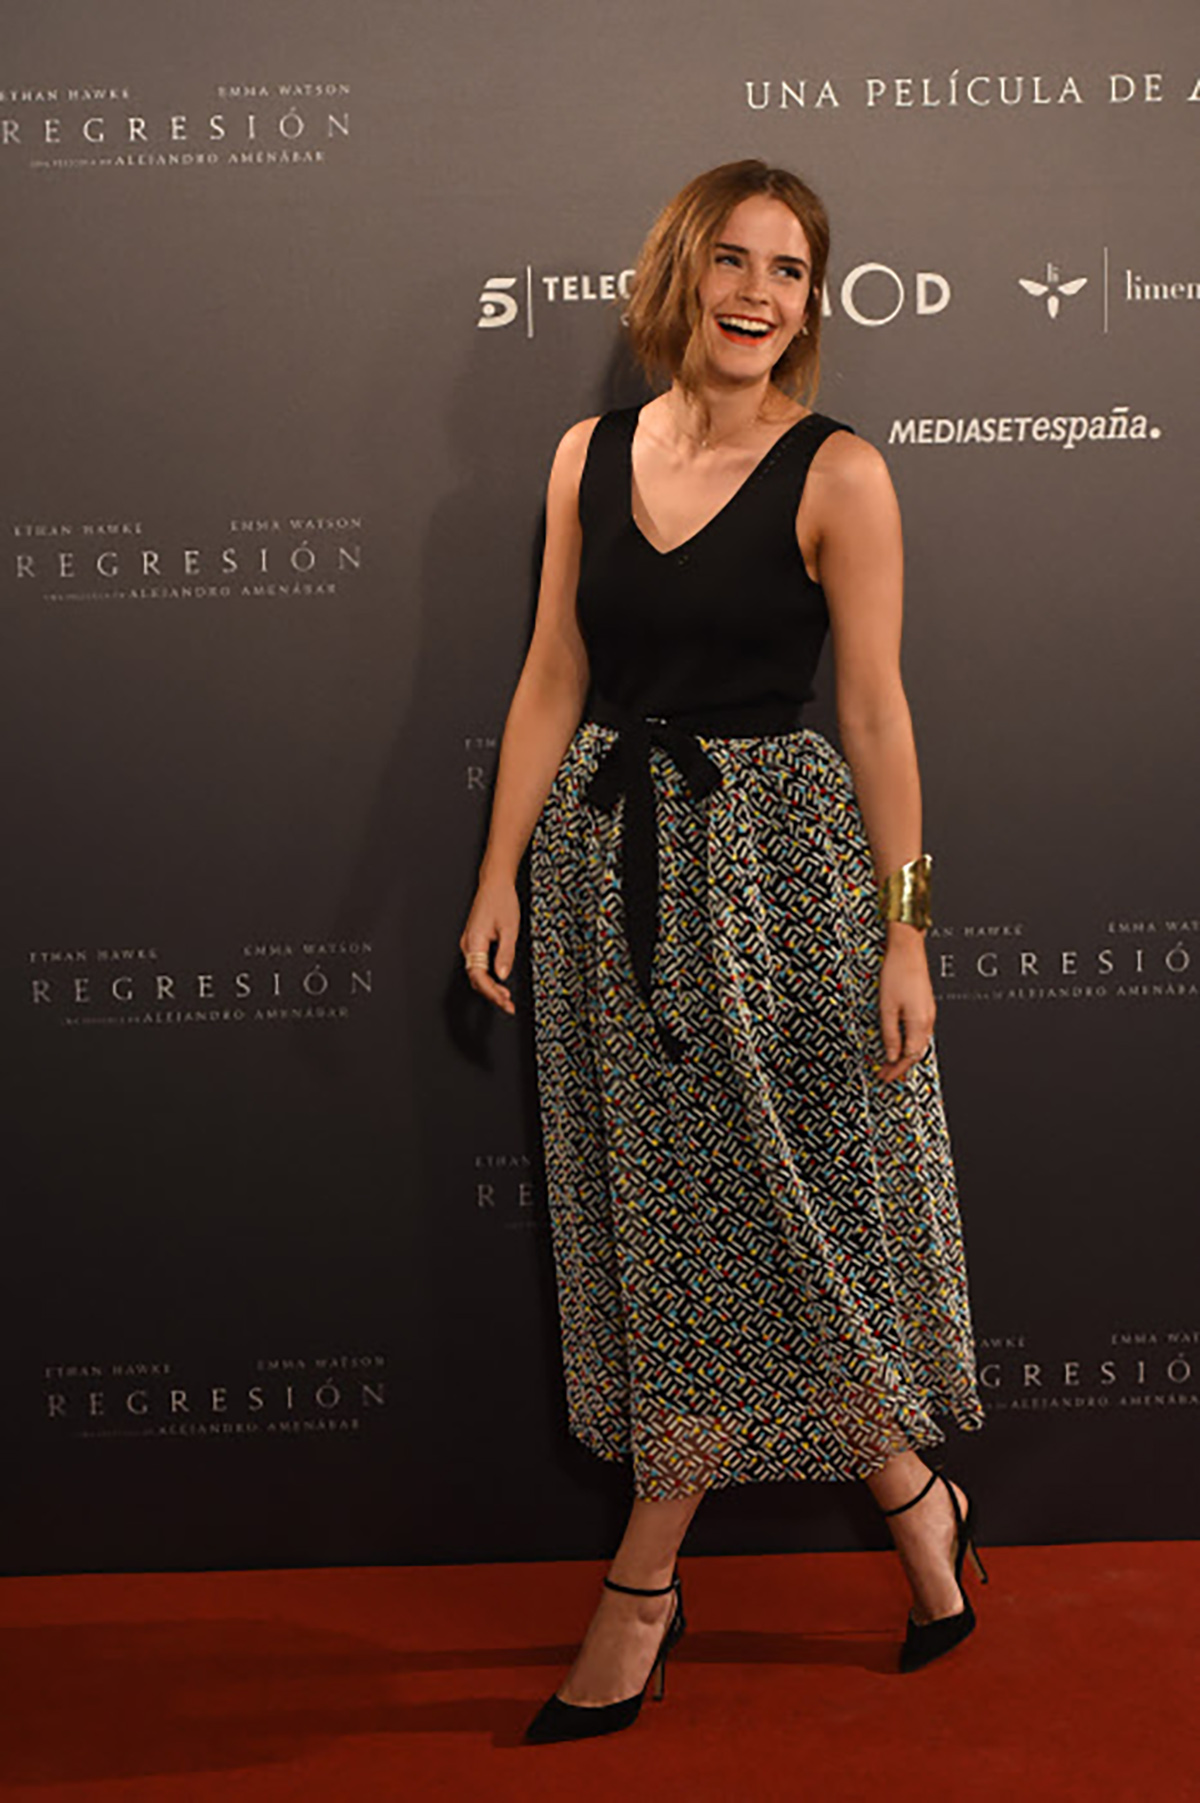 13. Actress Emma Watson at photocall of the movie Regresión in Madrid. Emma a lo madrileña